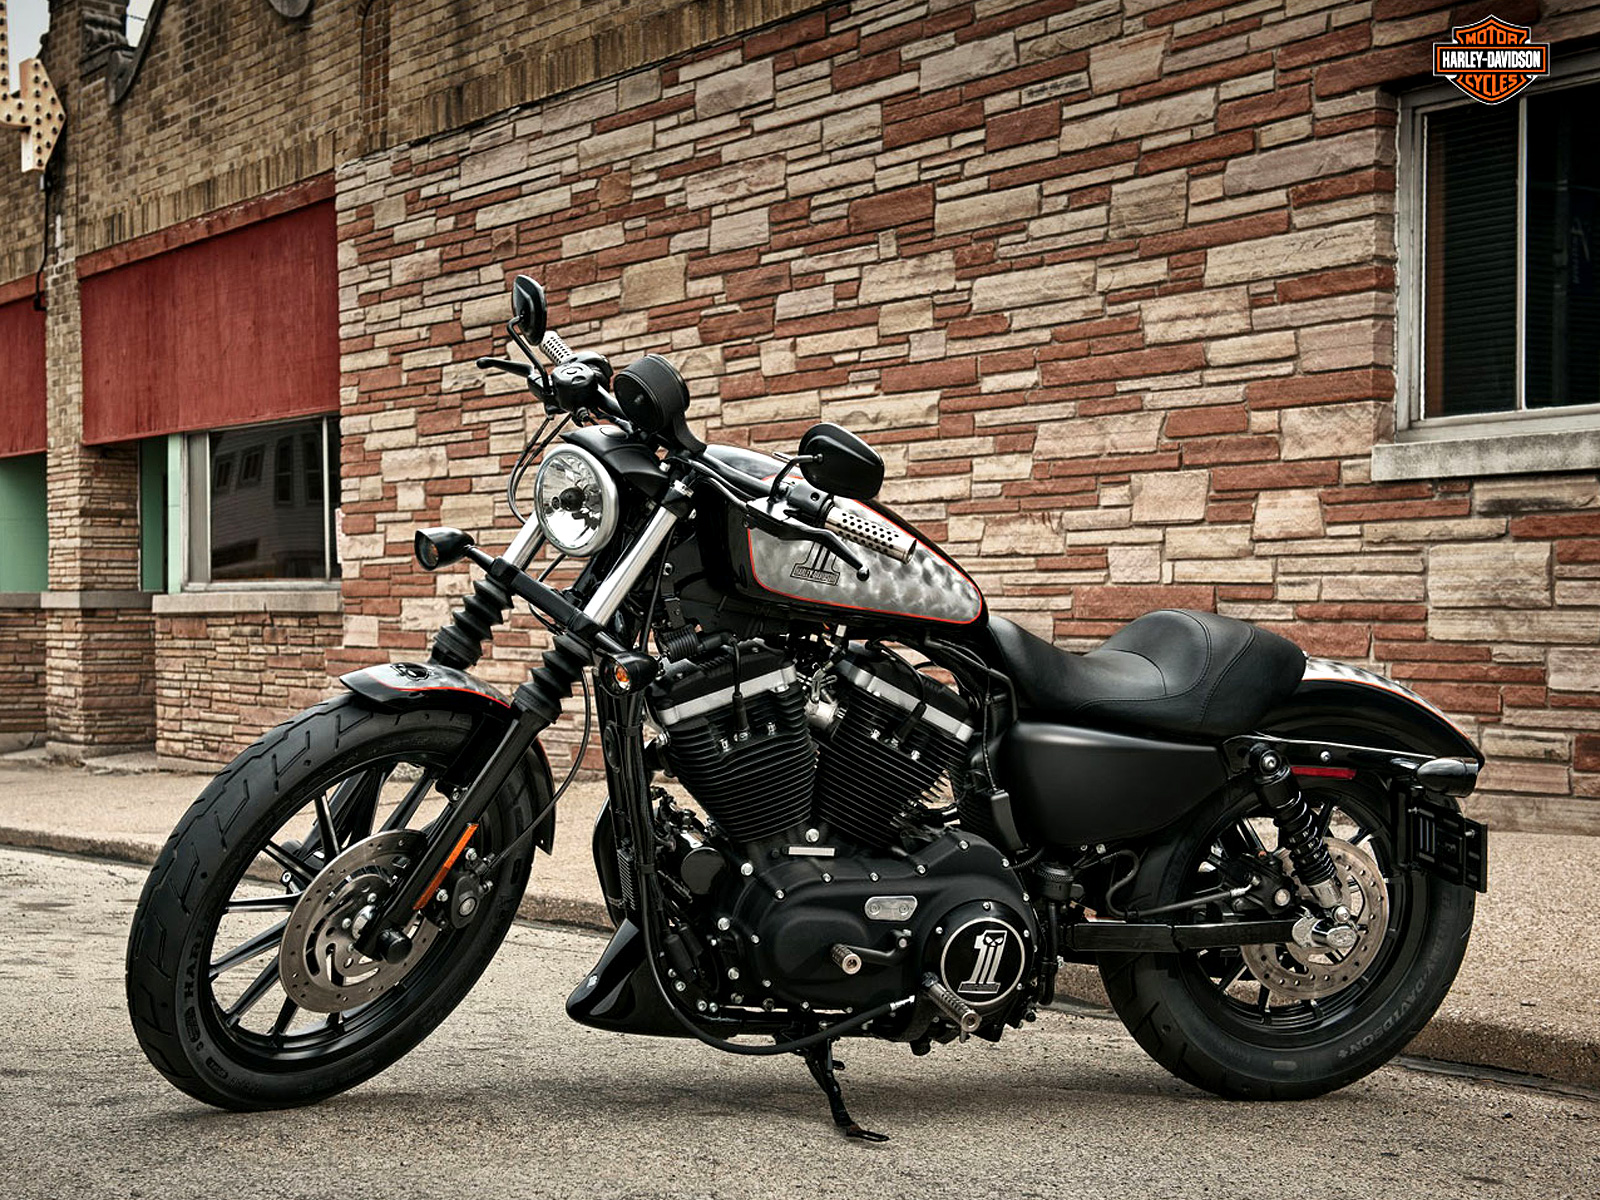 2012 Harley Davidson XL883N Iron 883 review